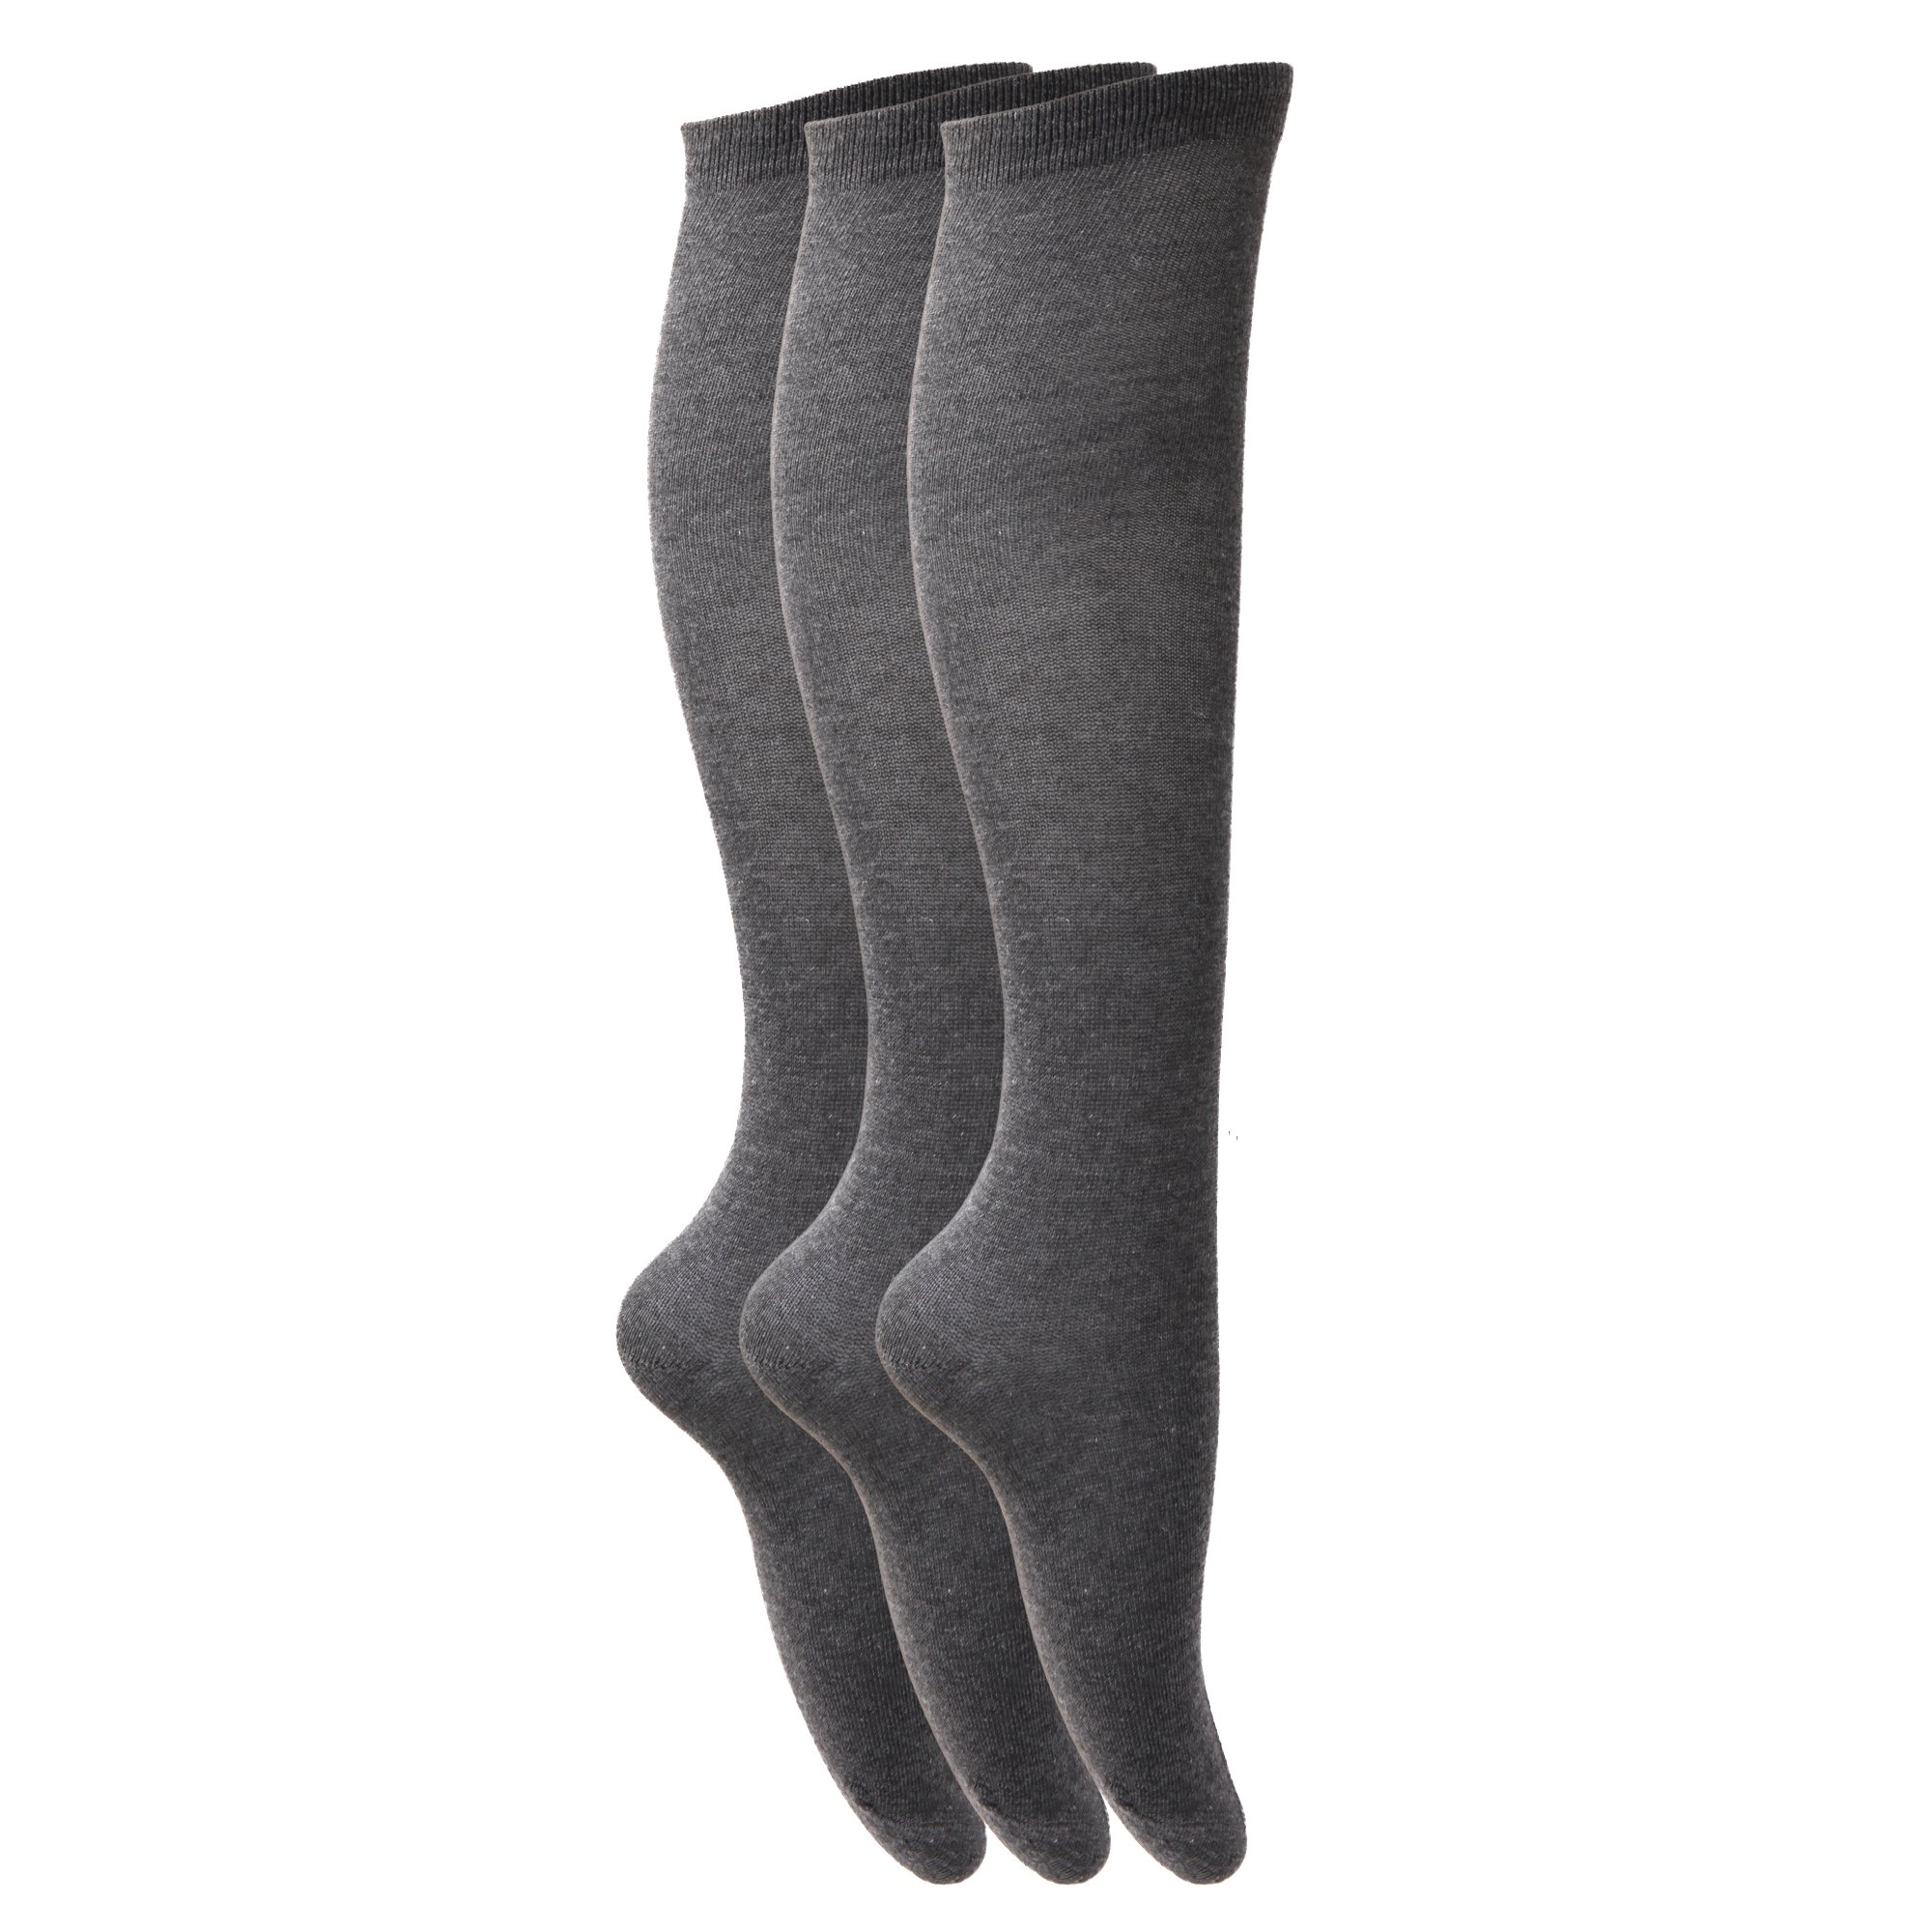 Calcetines Chicas Liso Knee High School (3 Pack)